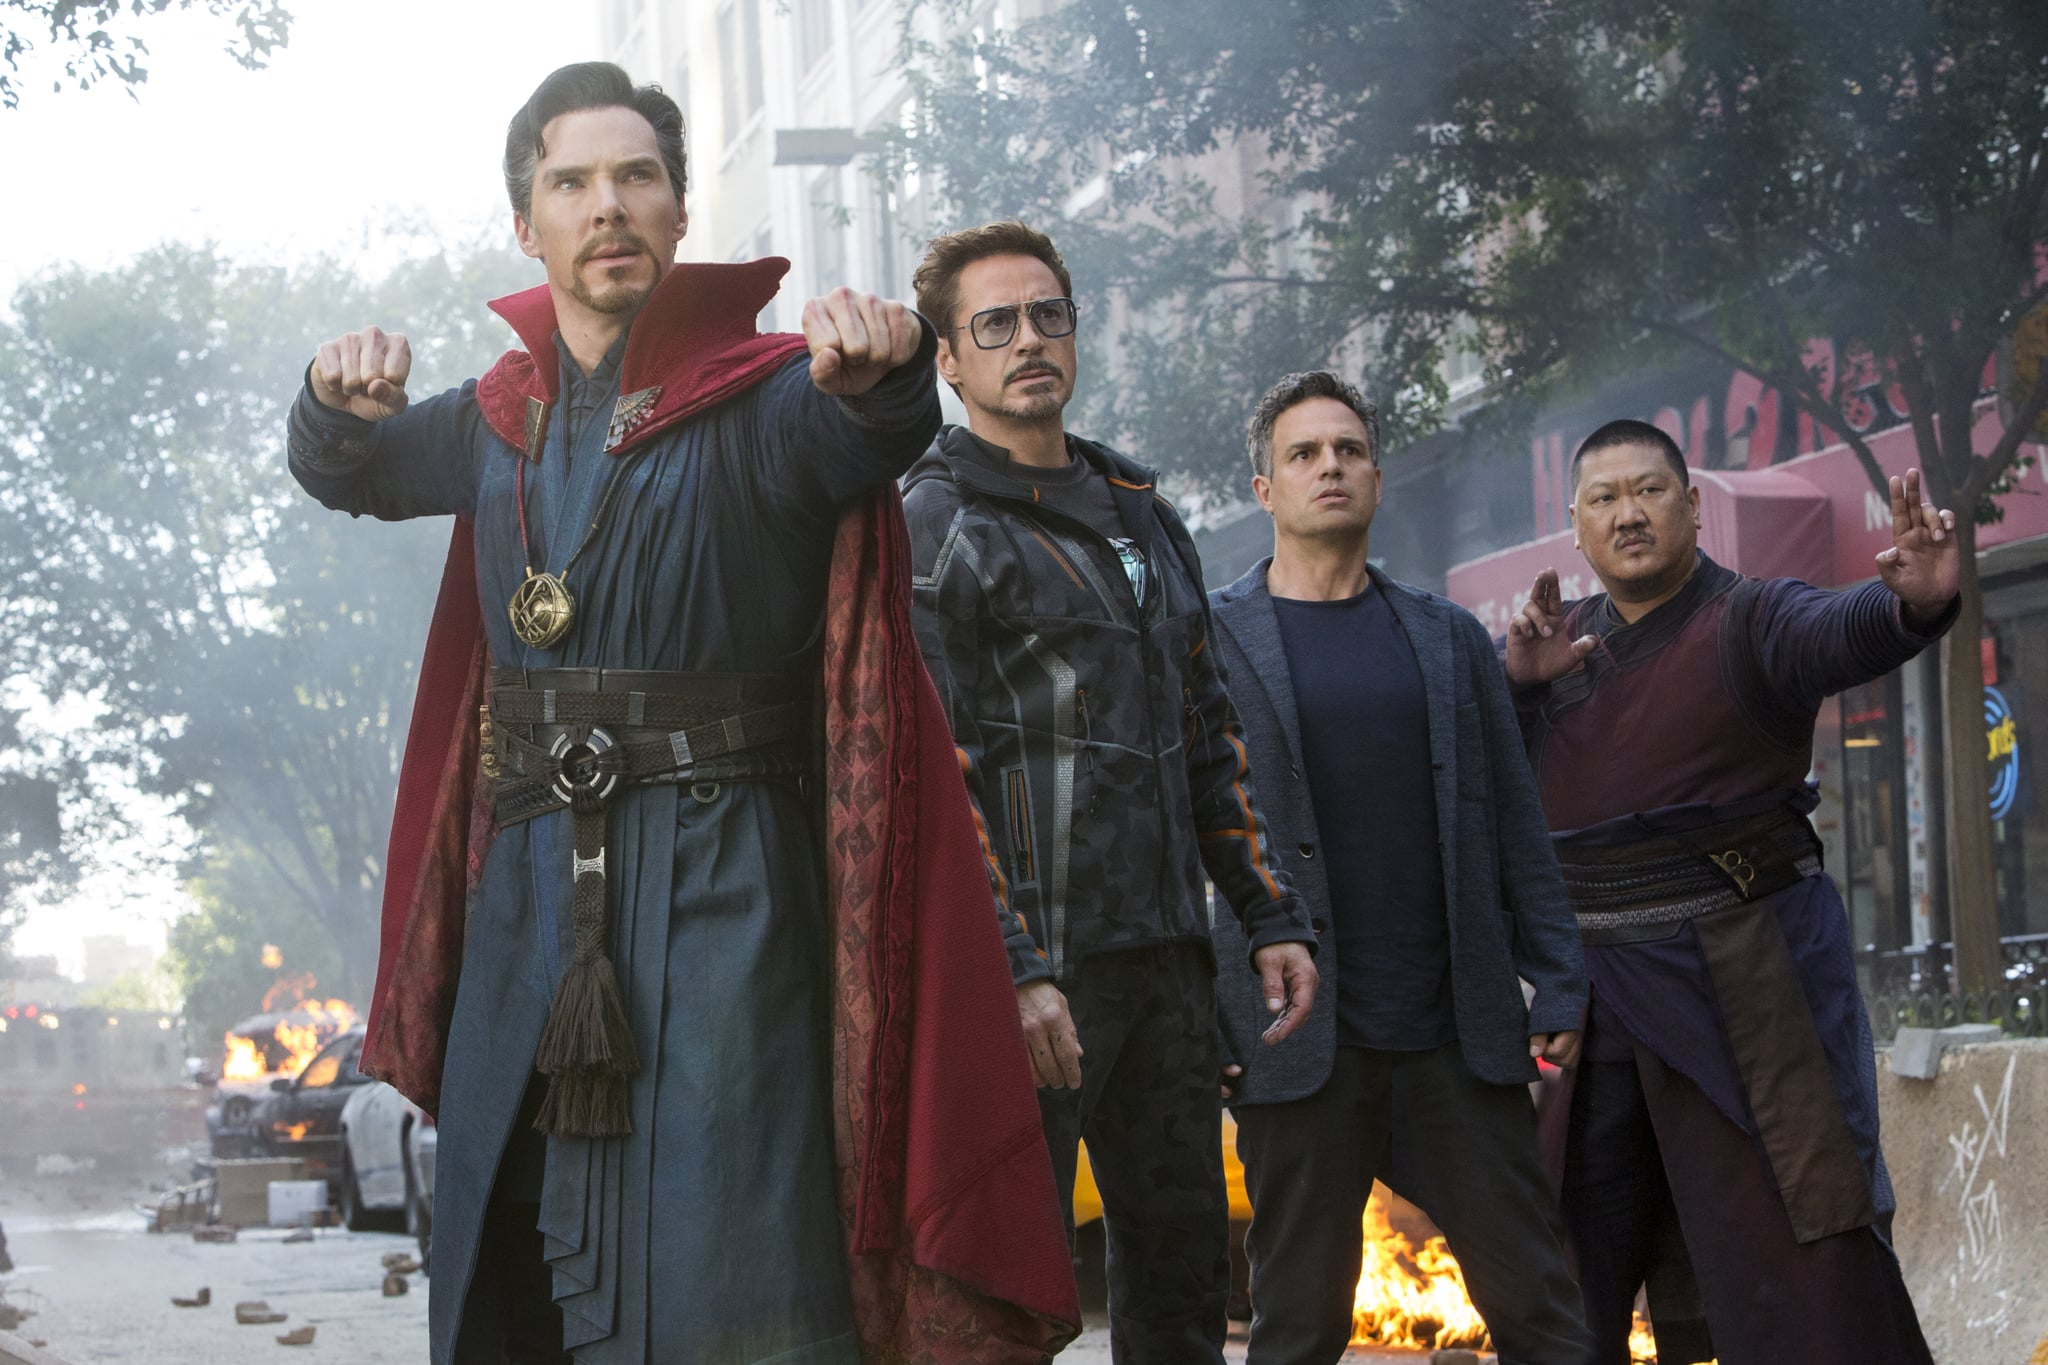 Marvel Studios' AVENGERS: INFINITY WAR..L to R: Doctor Strange/Stephen Strange (Benedict Cumberbatch), Iron Man/Tony Stark (Robert Downey Jr.), Bruce Banner/Hulk (Mark Ruffalo) and Wong (Benedict Wong)..Photo: Chuck Zlotnick..©Marvel Studios 2018